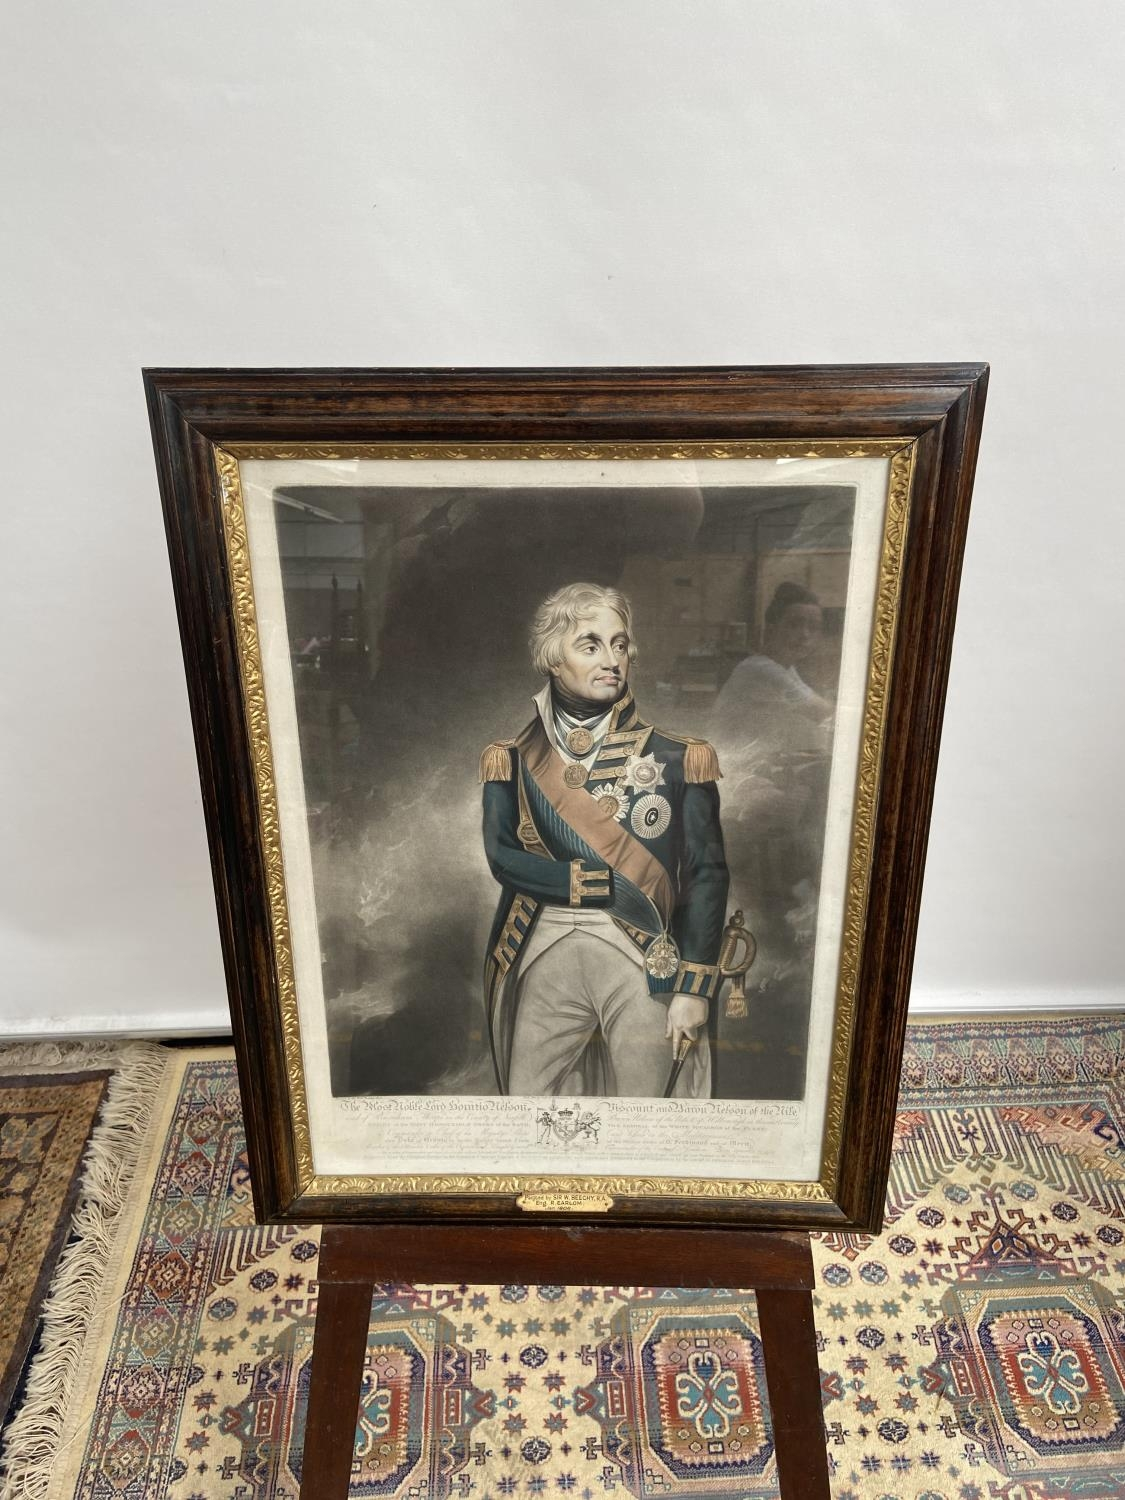 An early 19th century coloured engraving print of Lord Nelson, within a dark wood and gilt painted